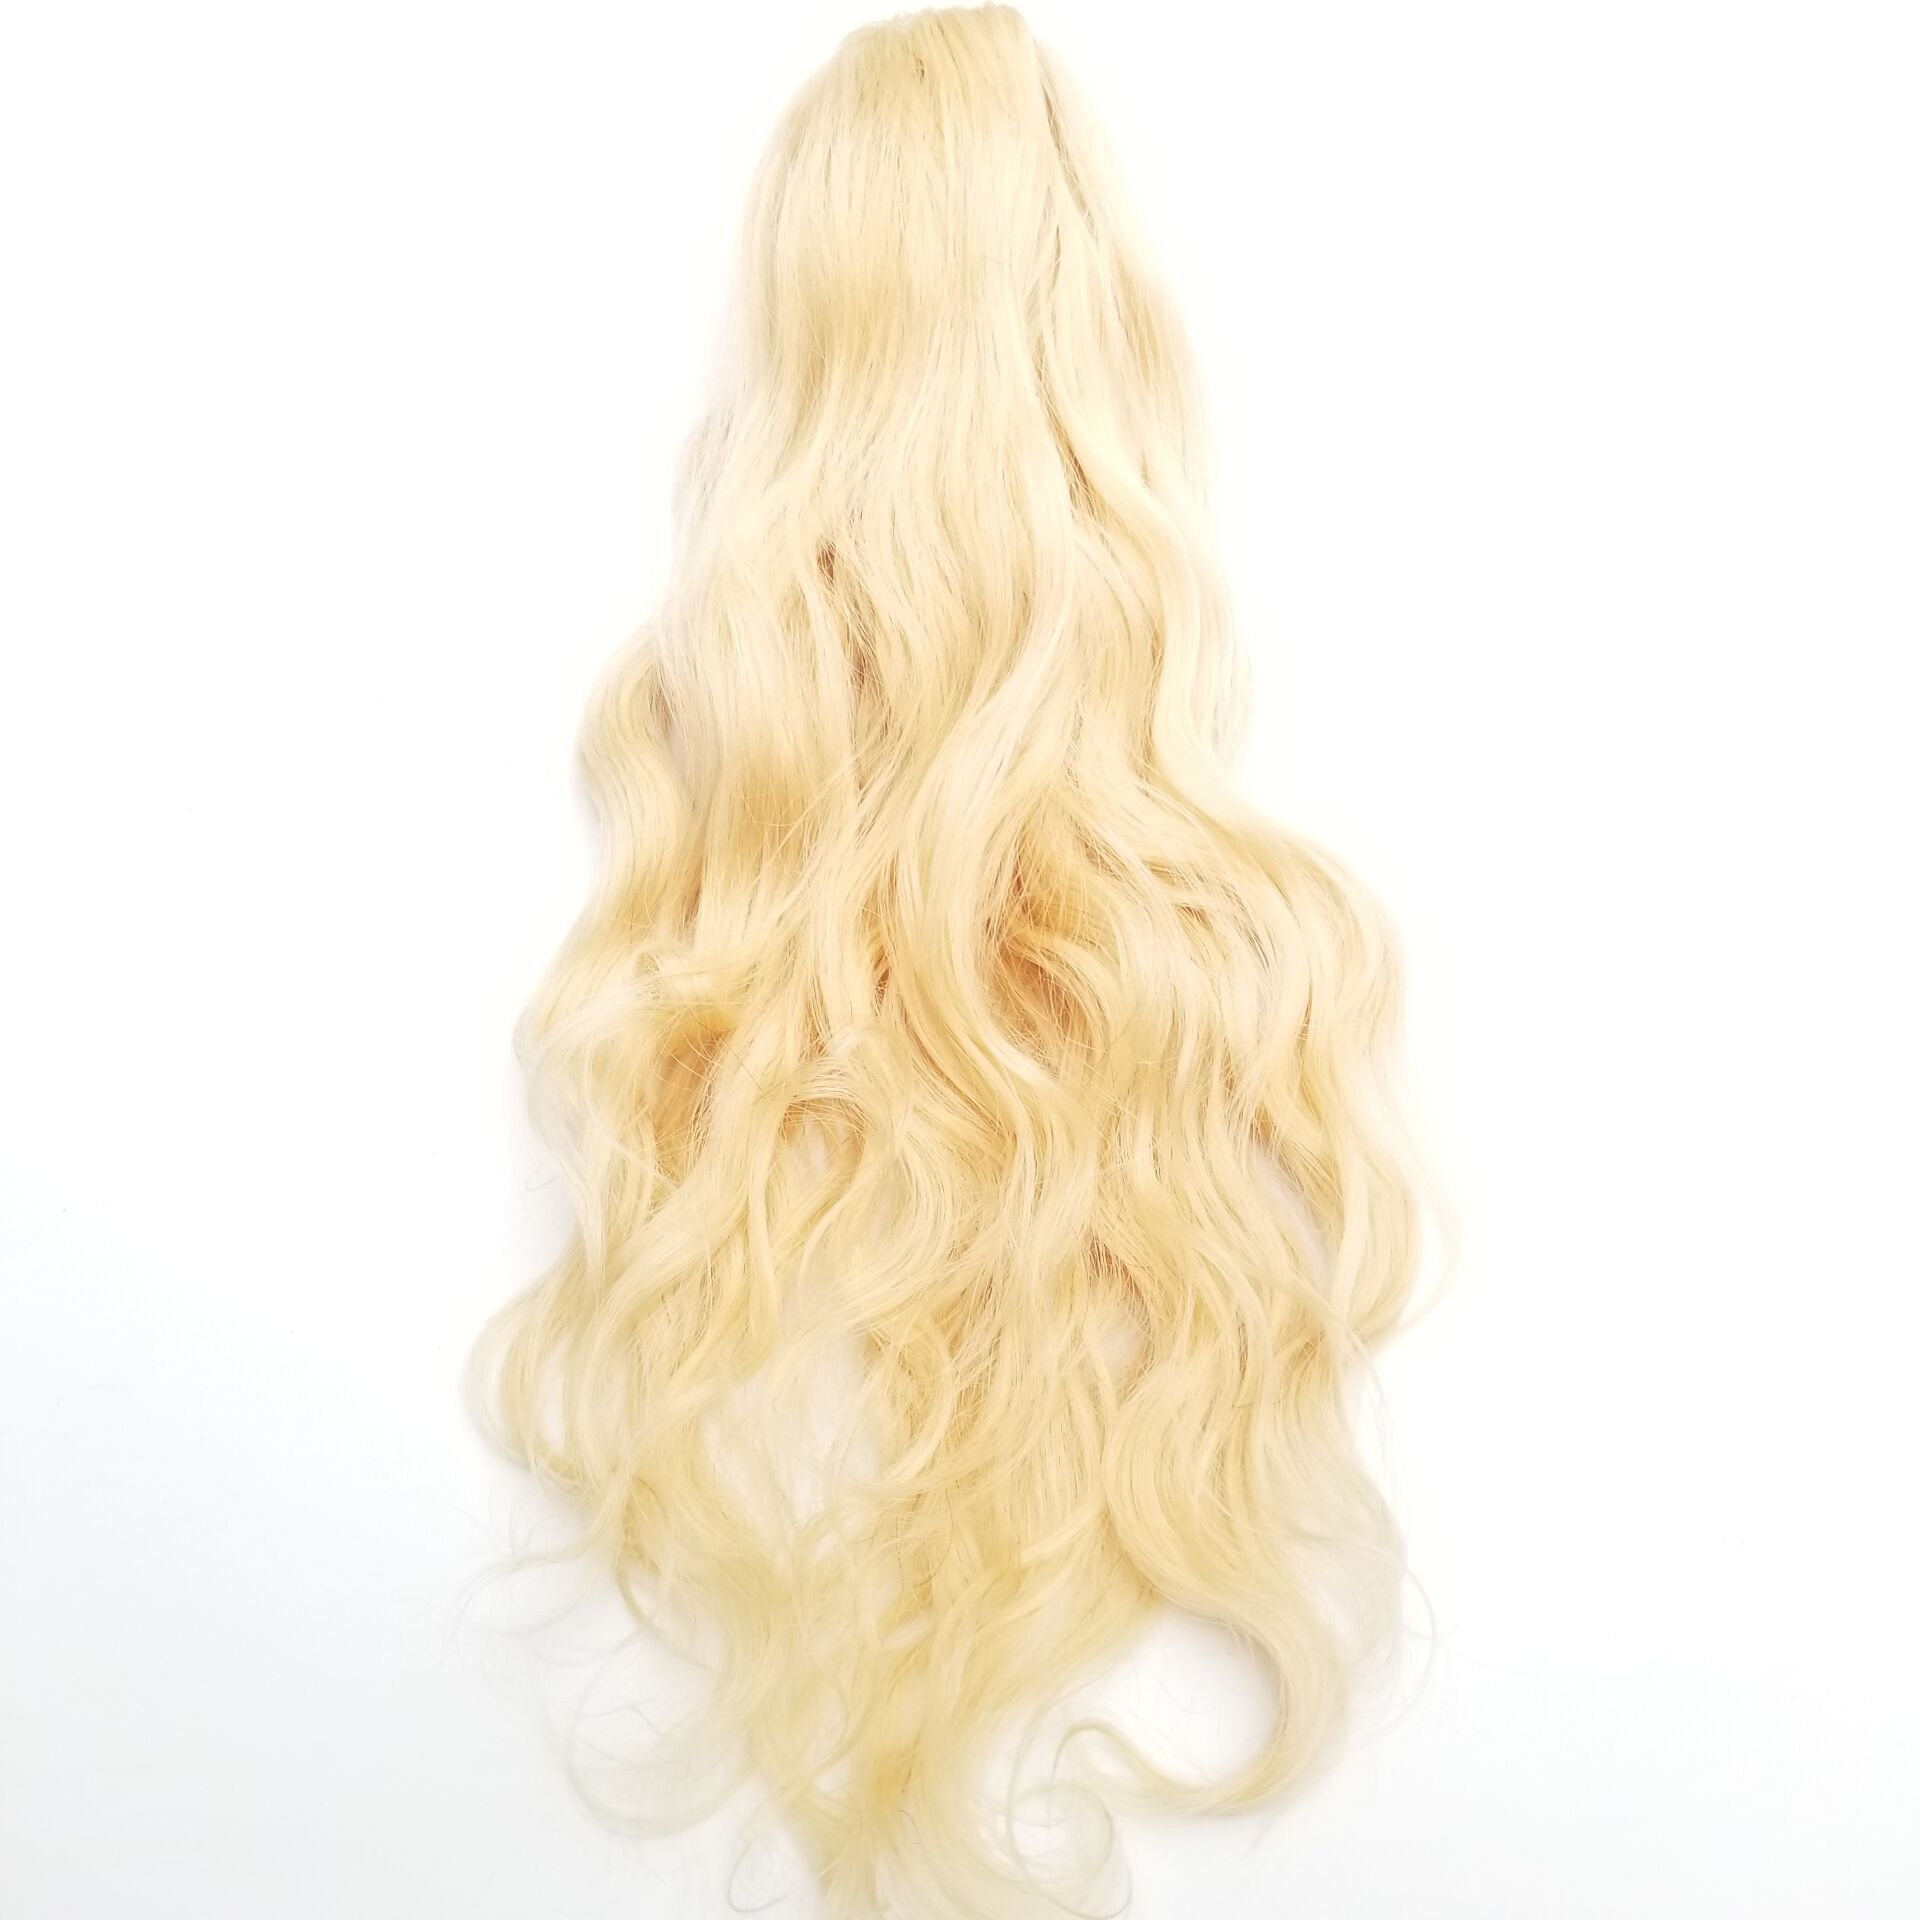 14 - 32 Inch Body Wave Claw Ponytail Extension Human Hair #613 Bleach Blonde 5